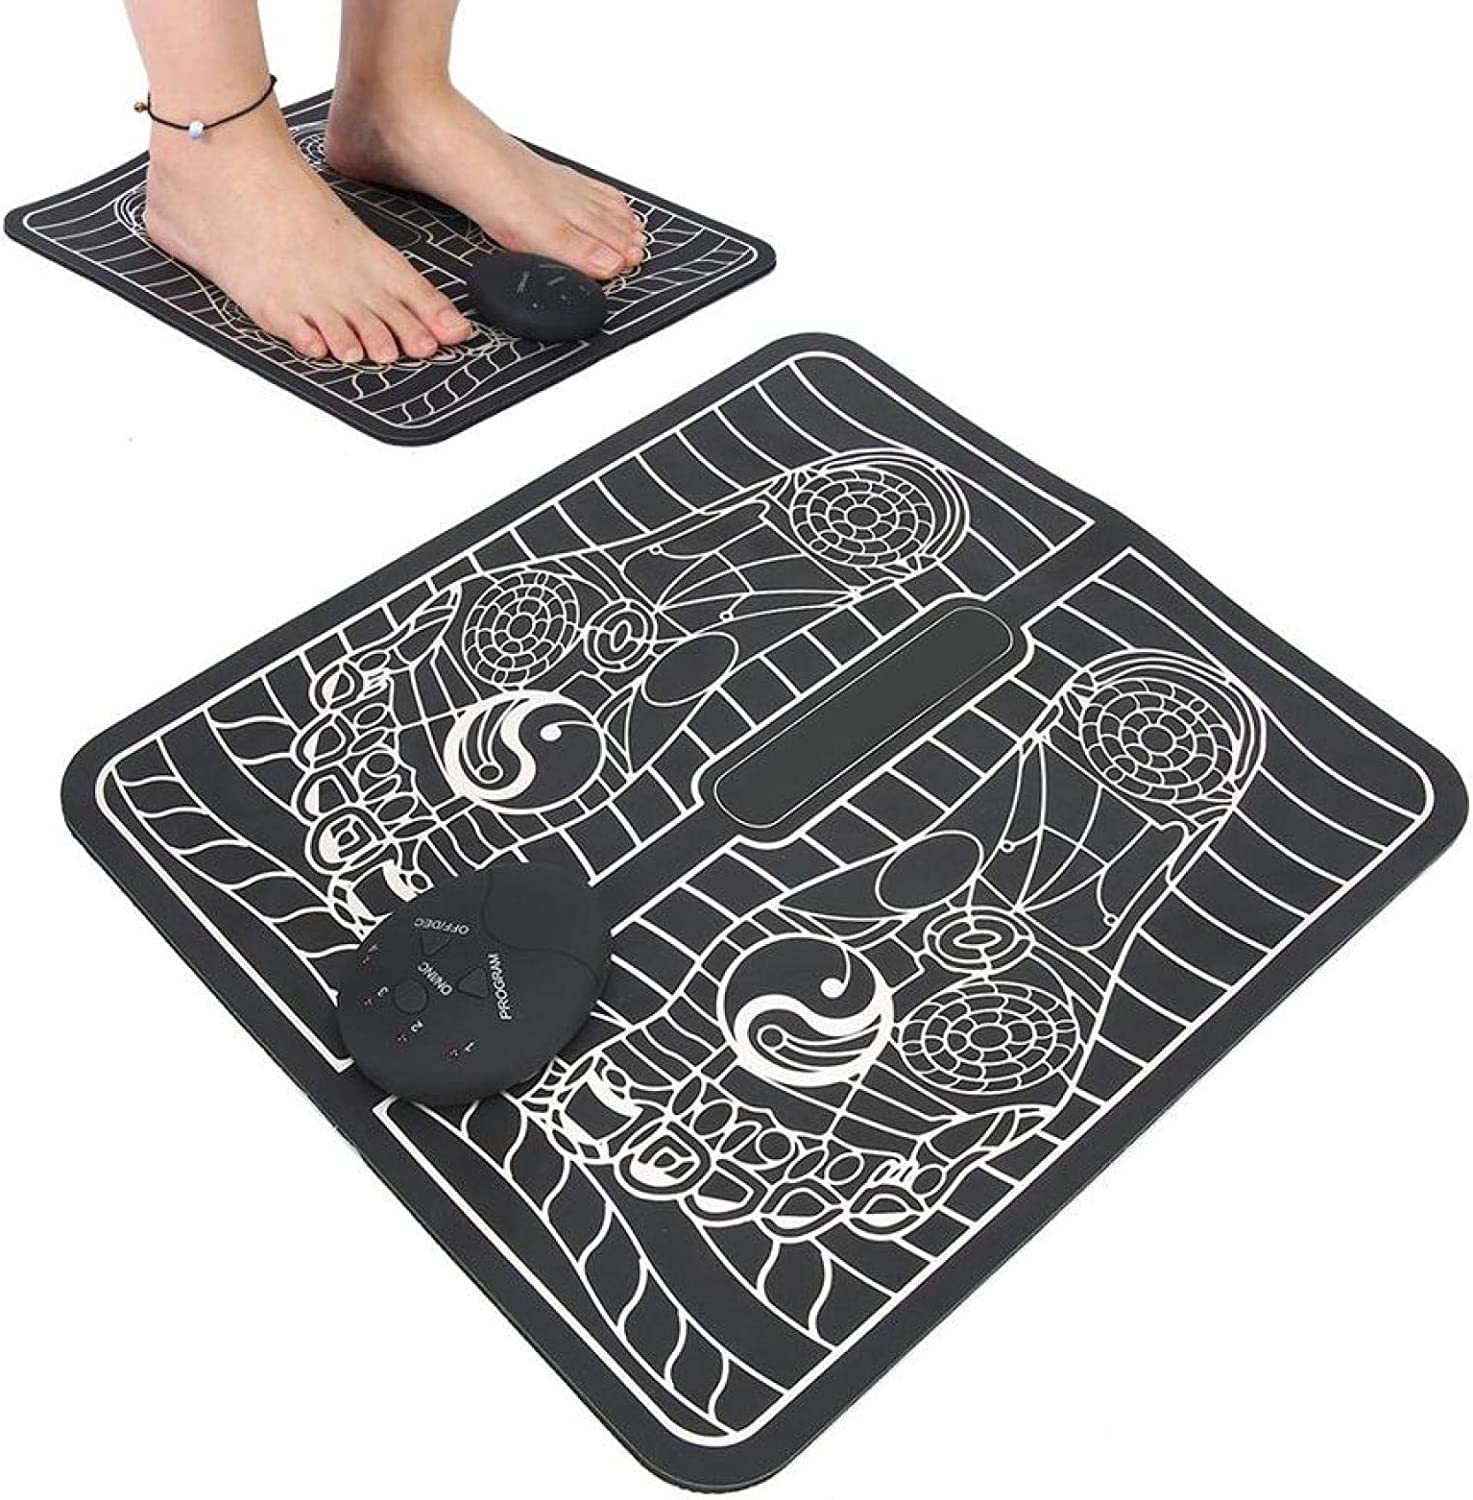 Foldable Electric Massage Foot Pad EMS Foo Super sale Raleigh Mall period limited